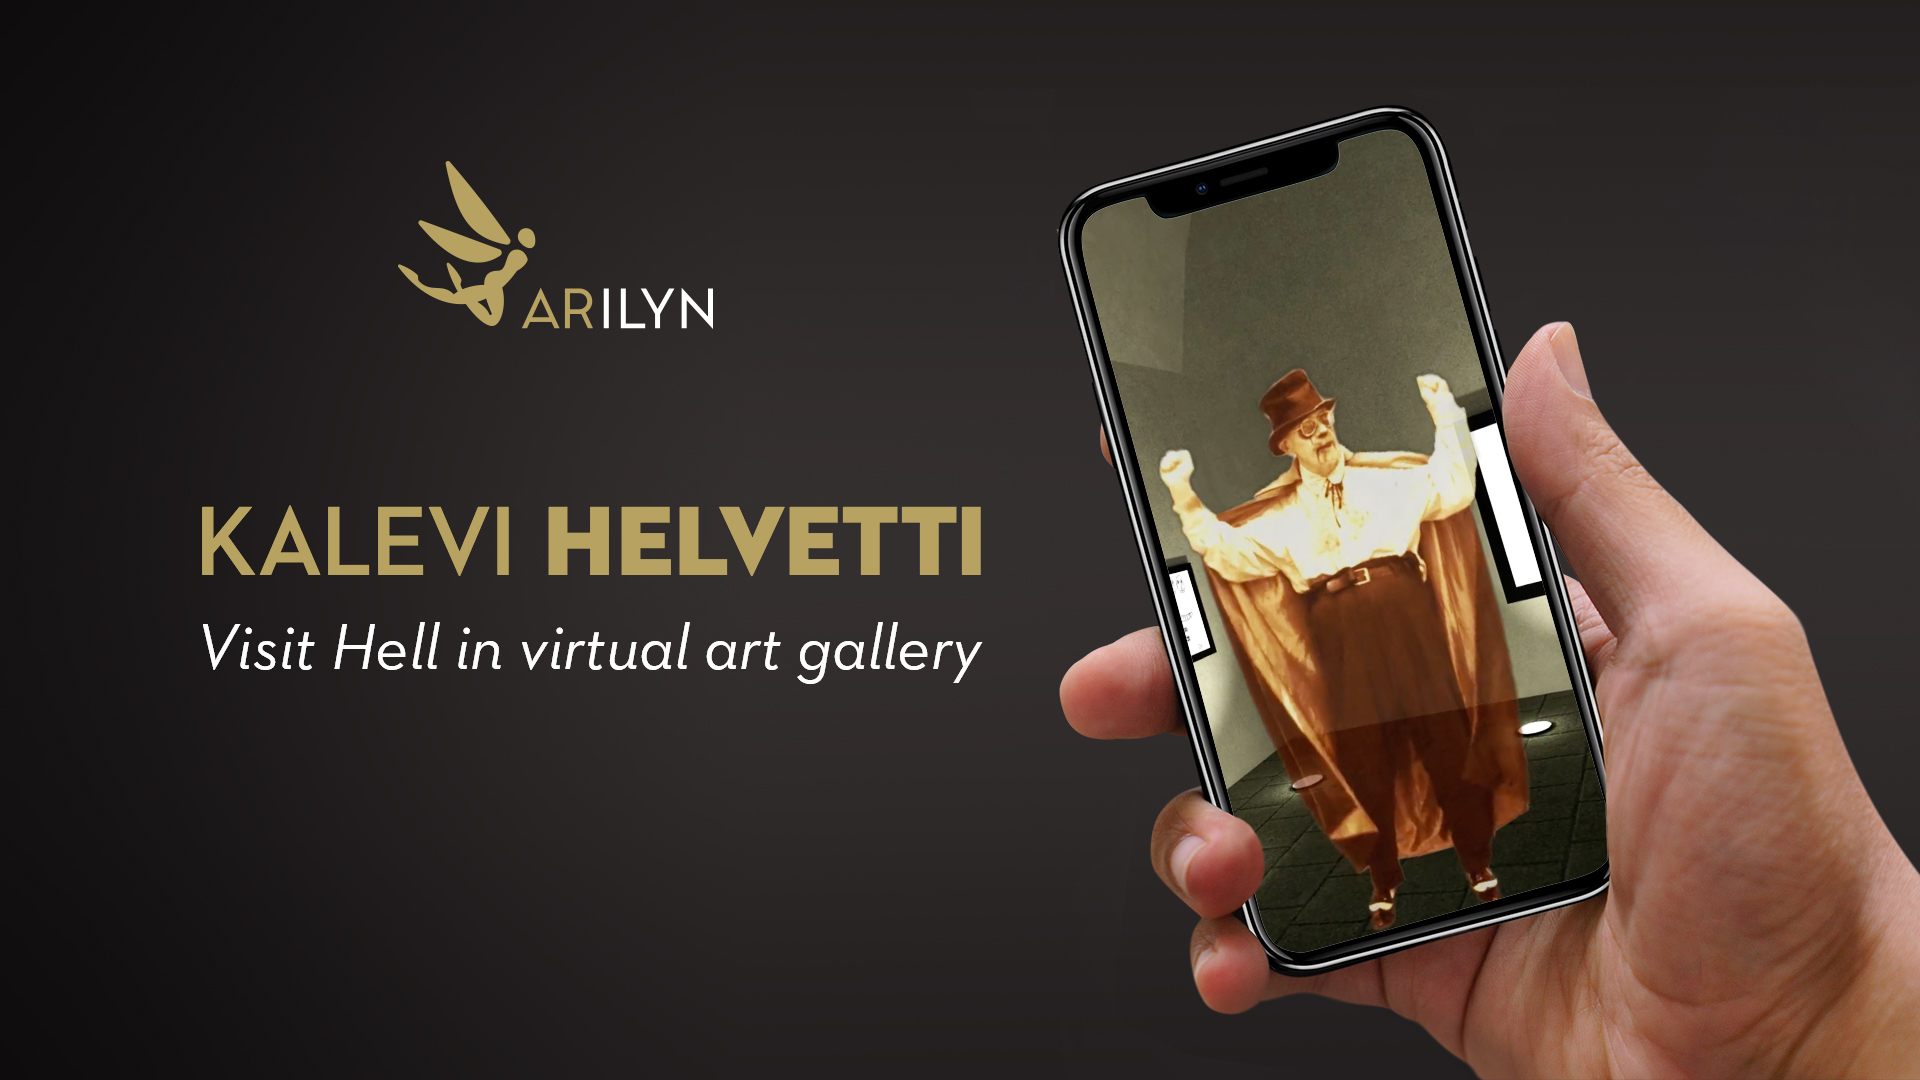 Welcome to Hell! Kalevi Helvetti virtual art gallery